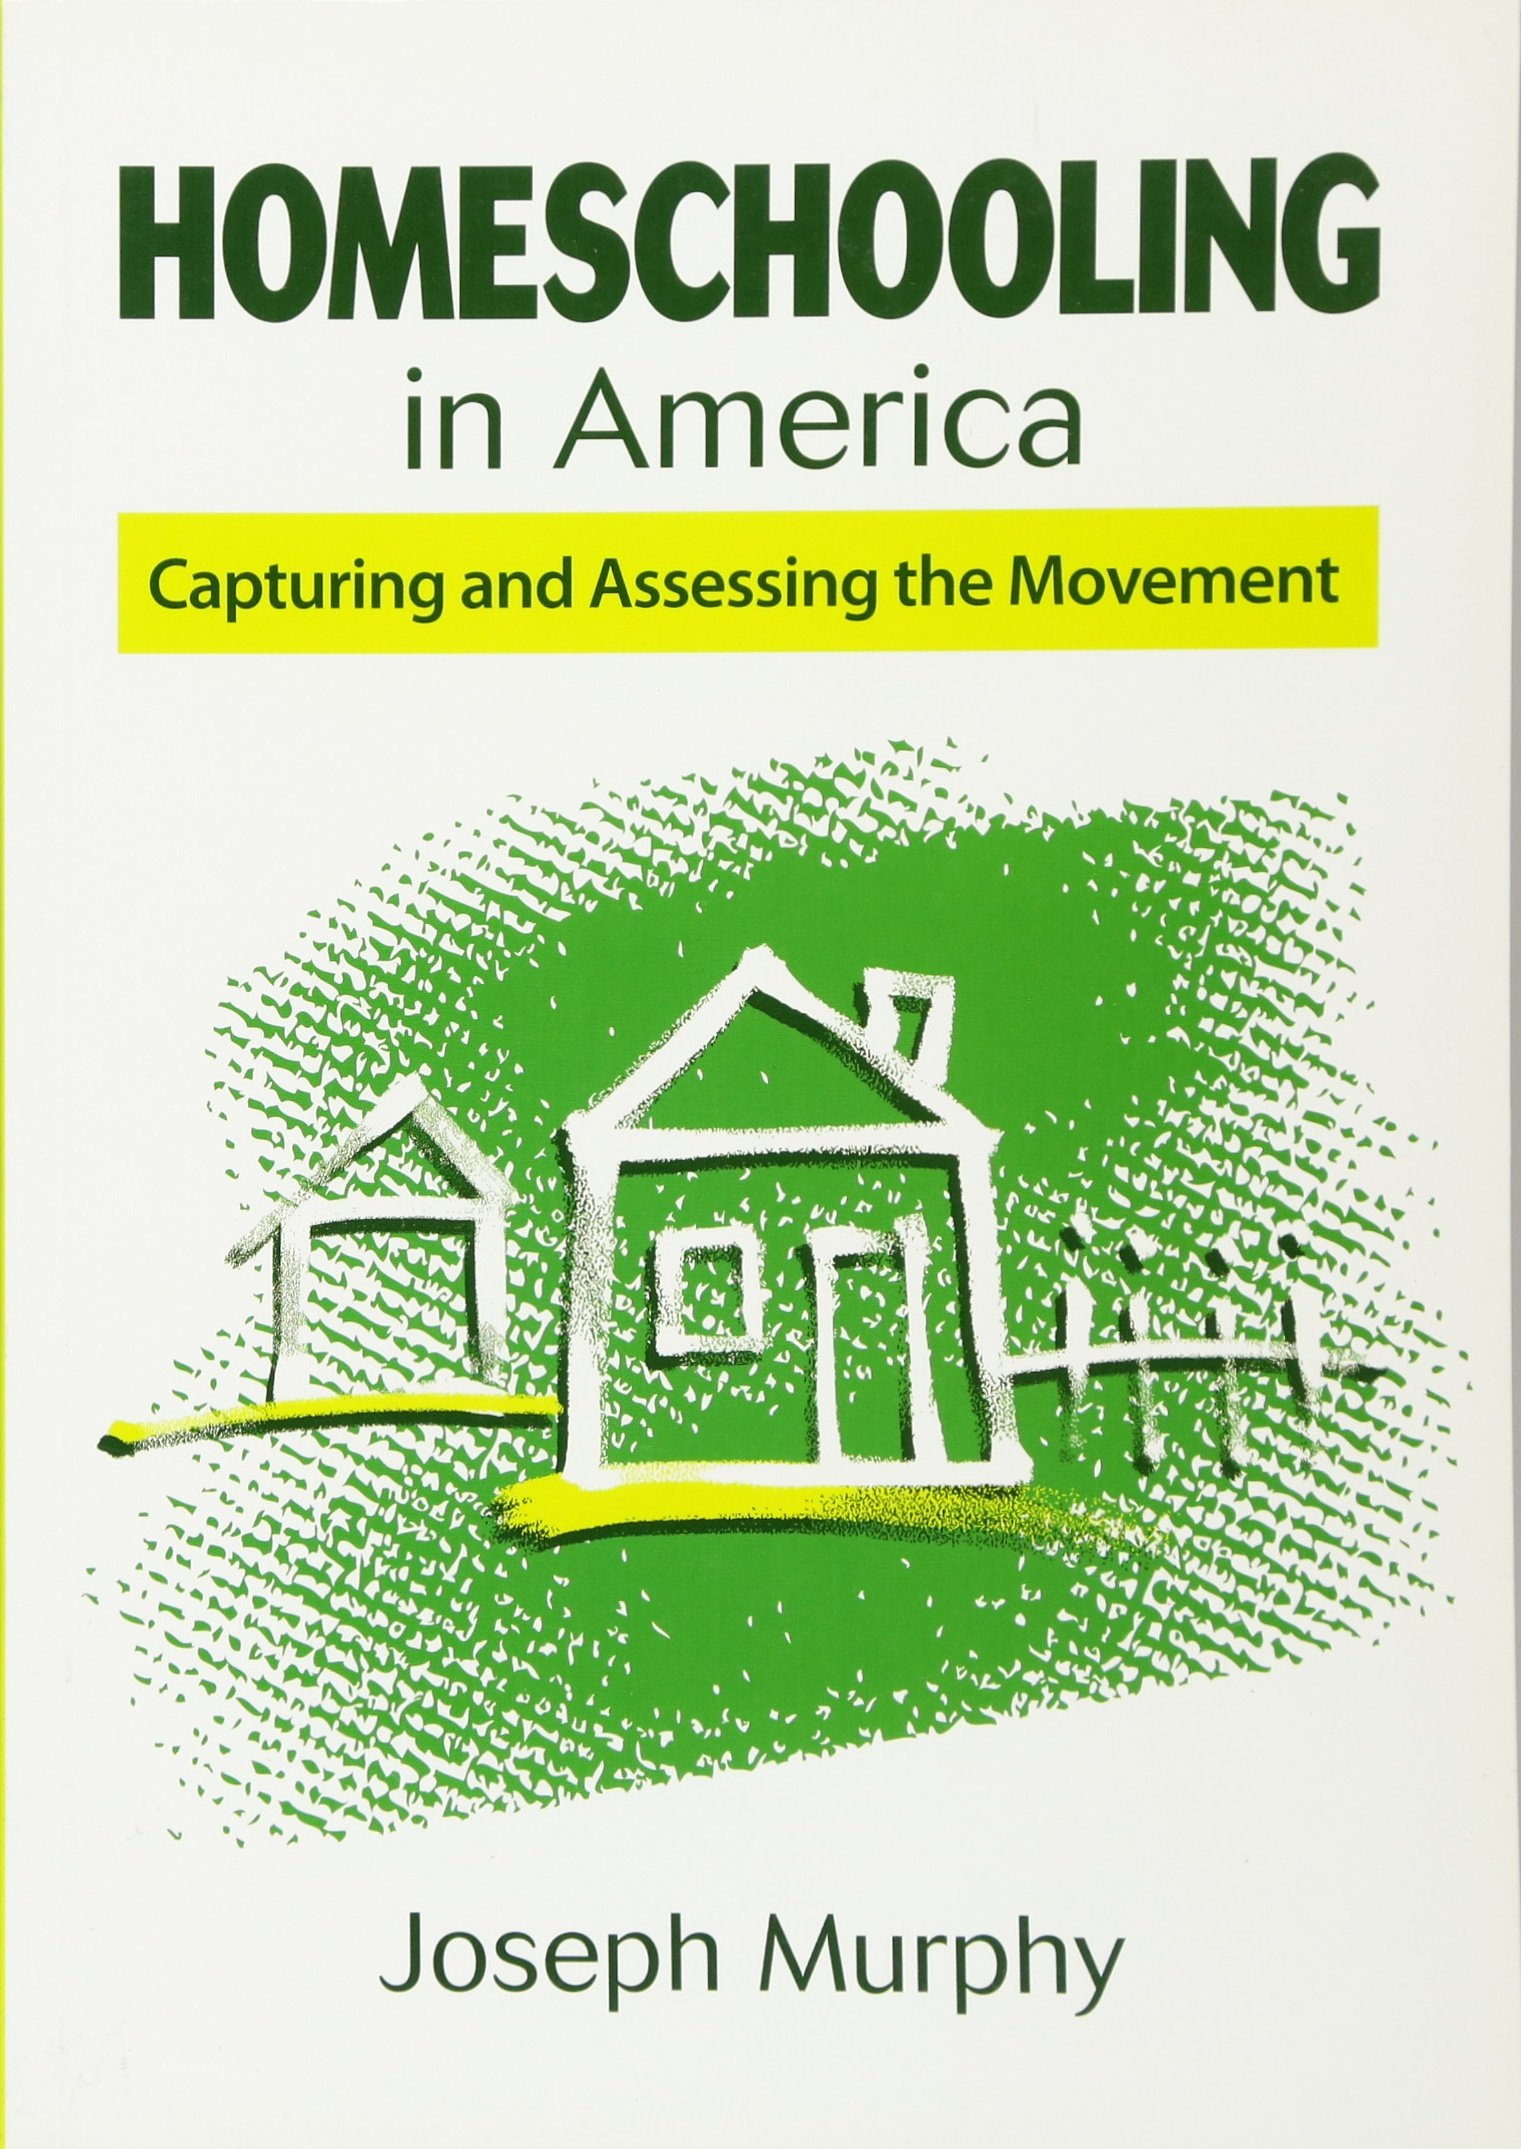 Homeschooling in America: Capturing and Assessing the Movement by Skyhorse Publishing